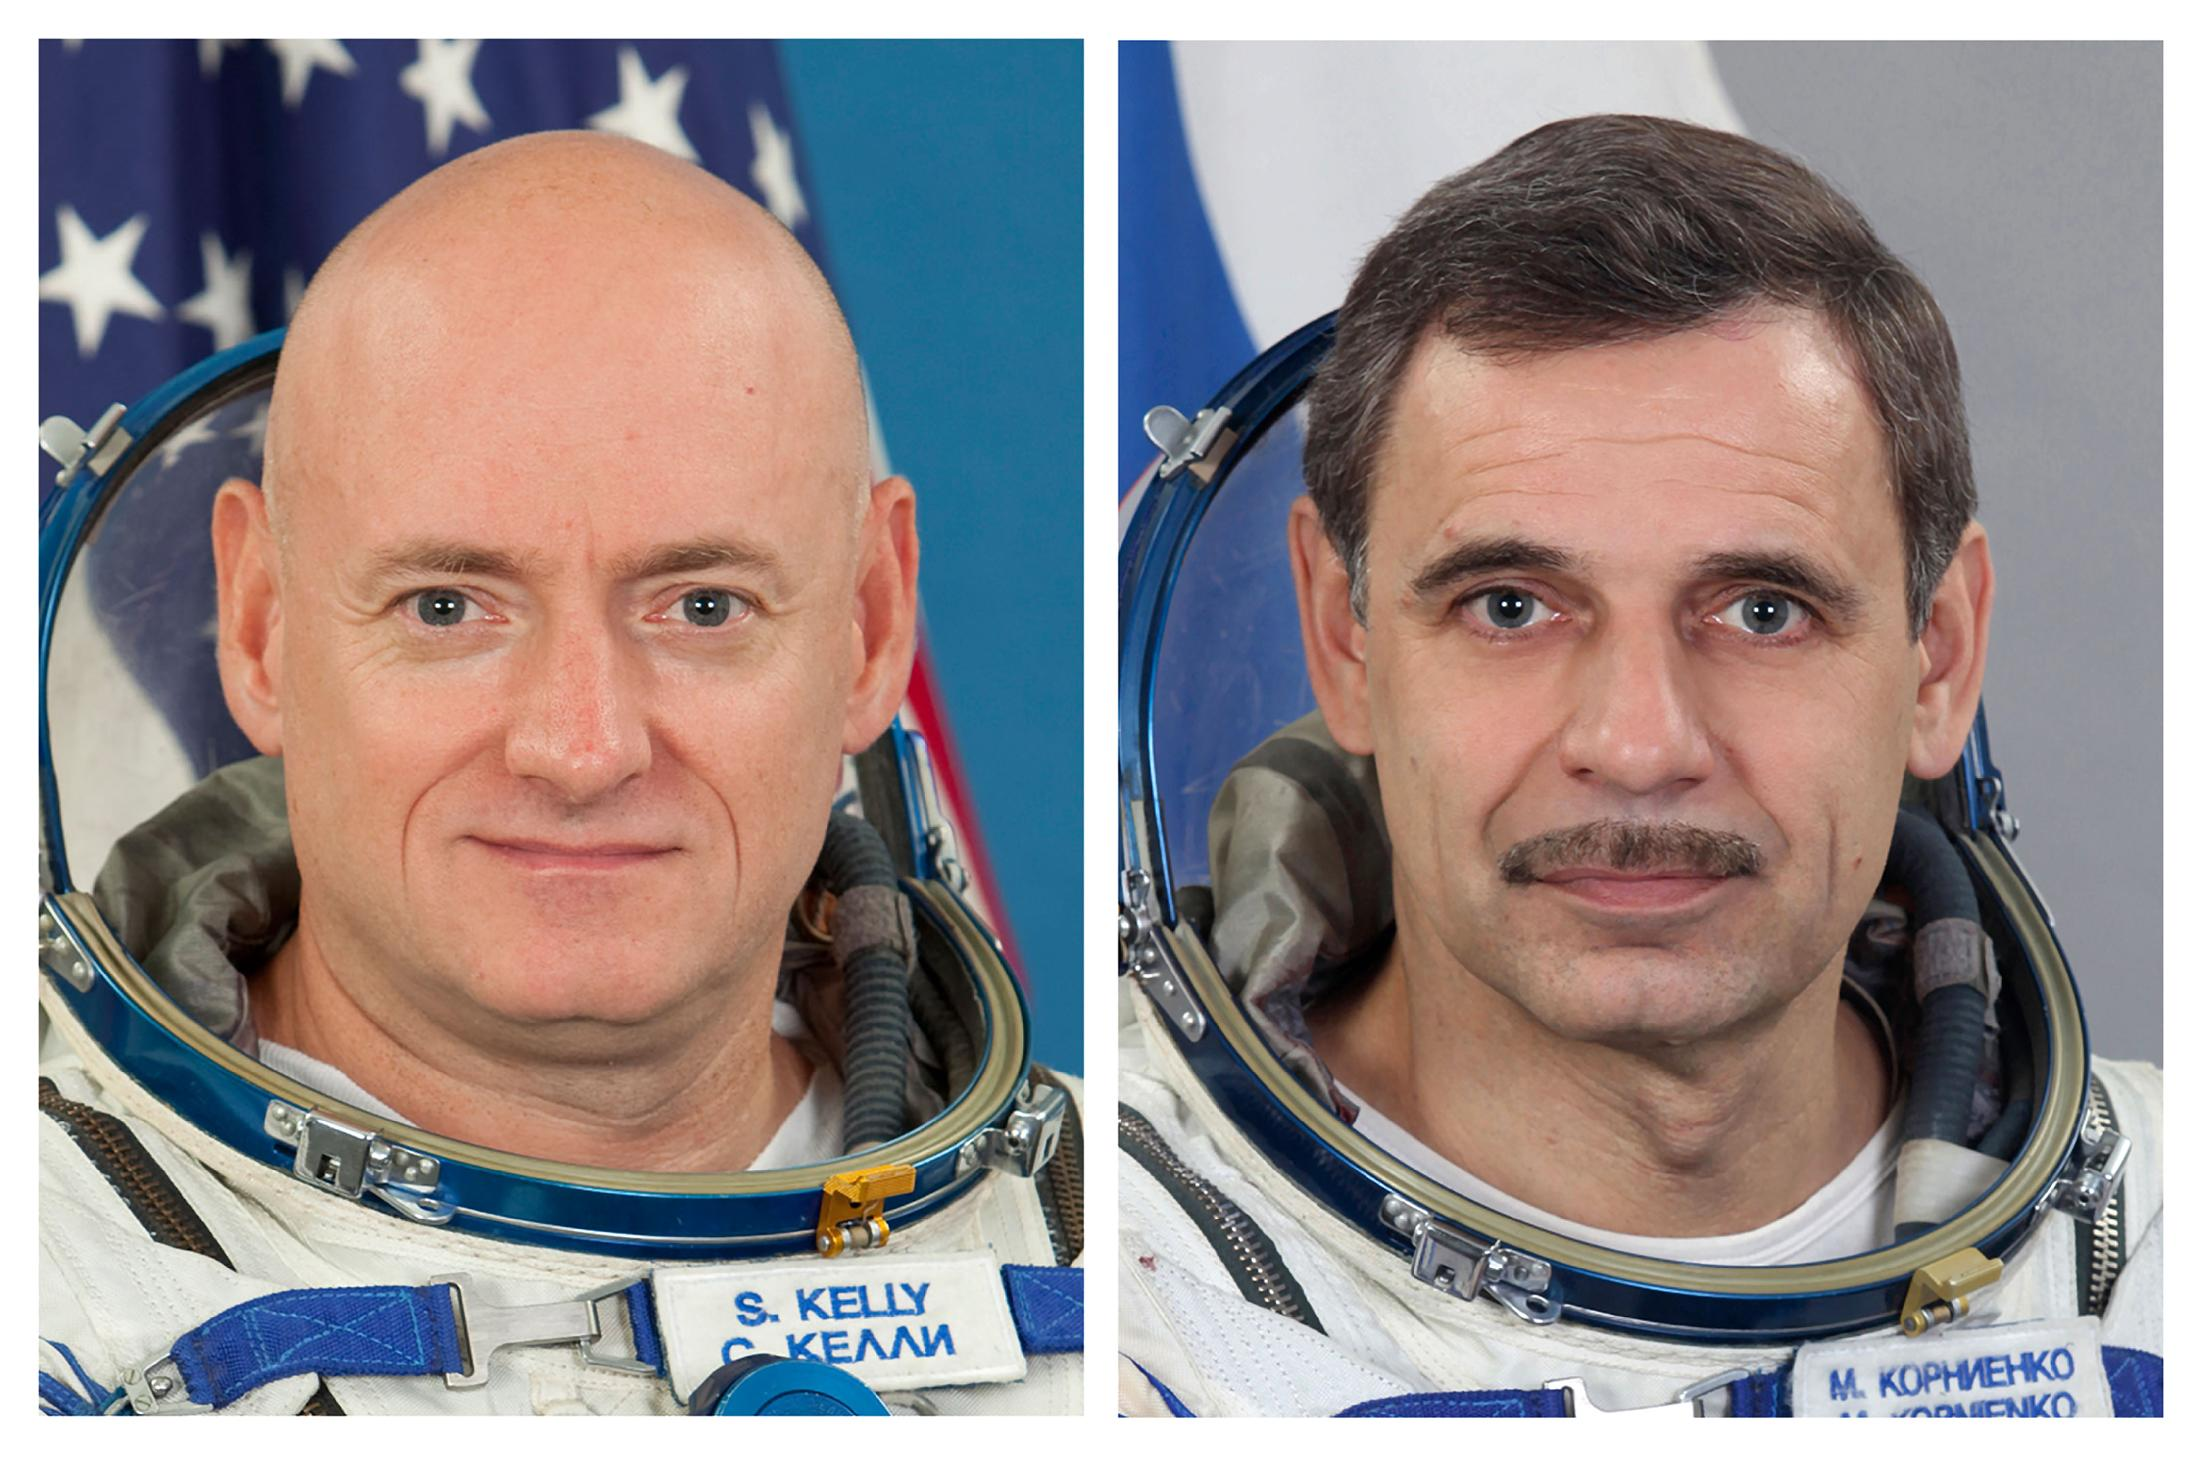 2 astronauts will expand envelope with 1-year spaceflight